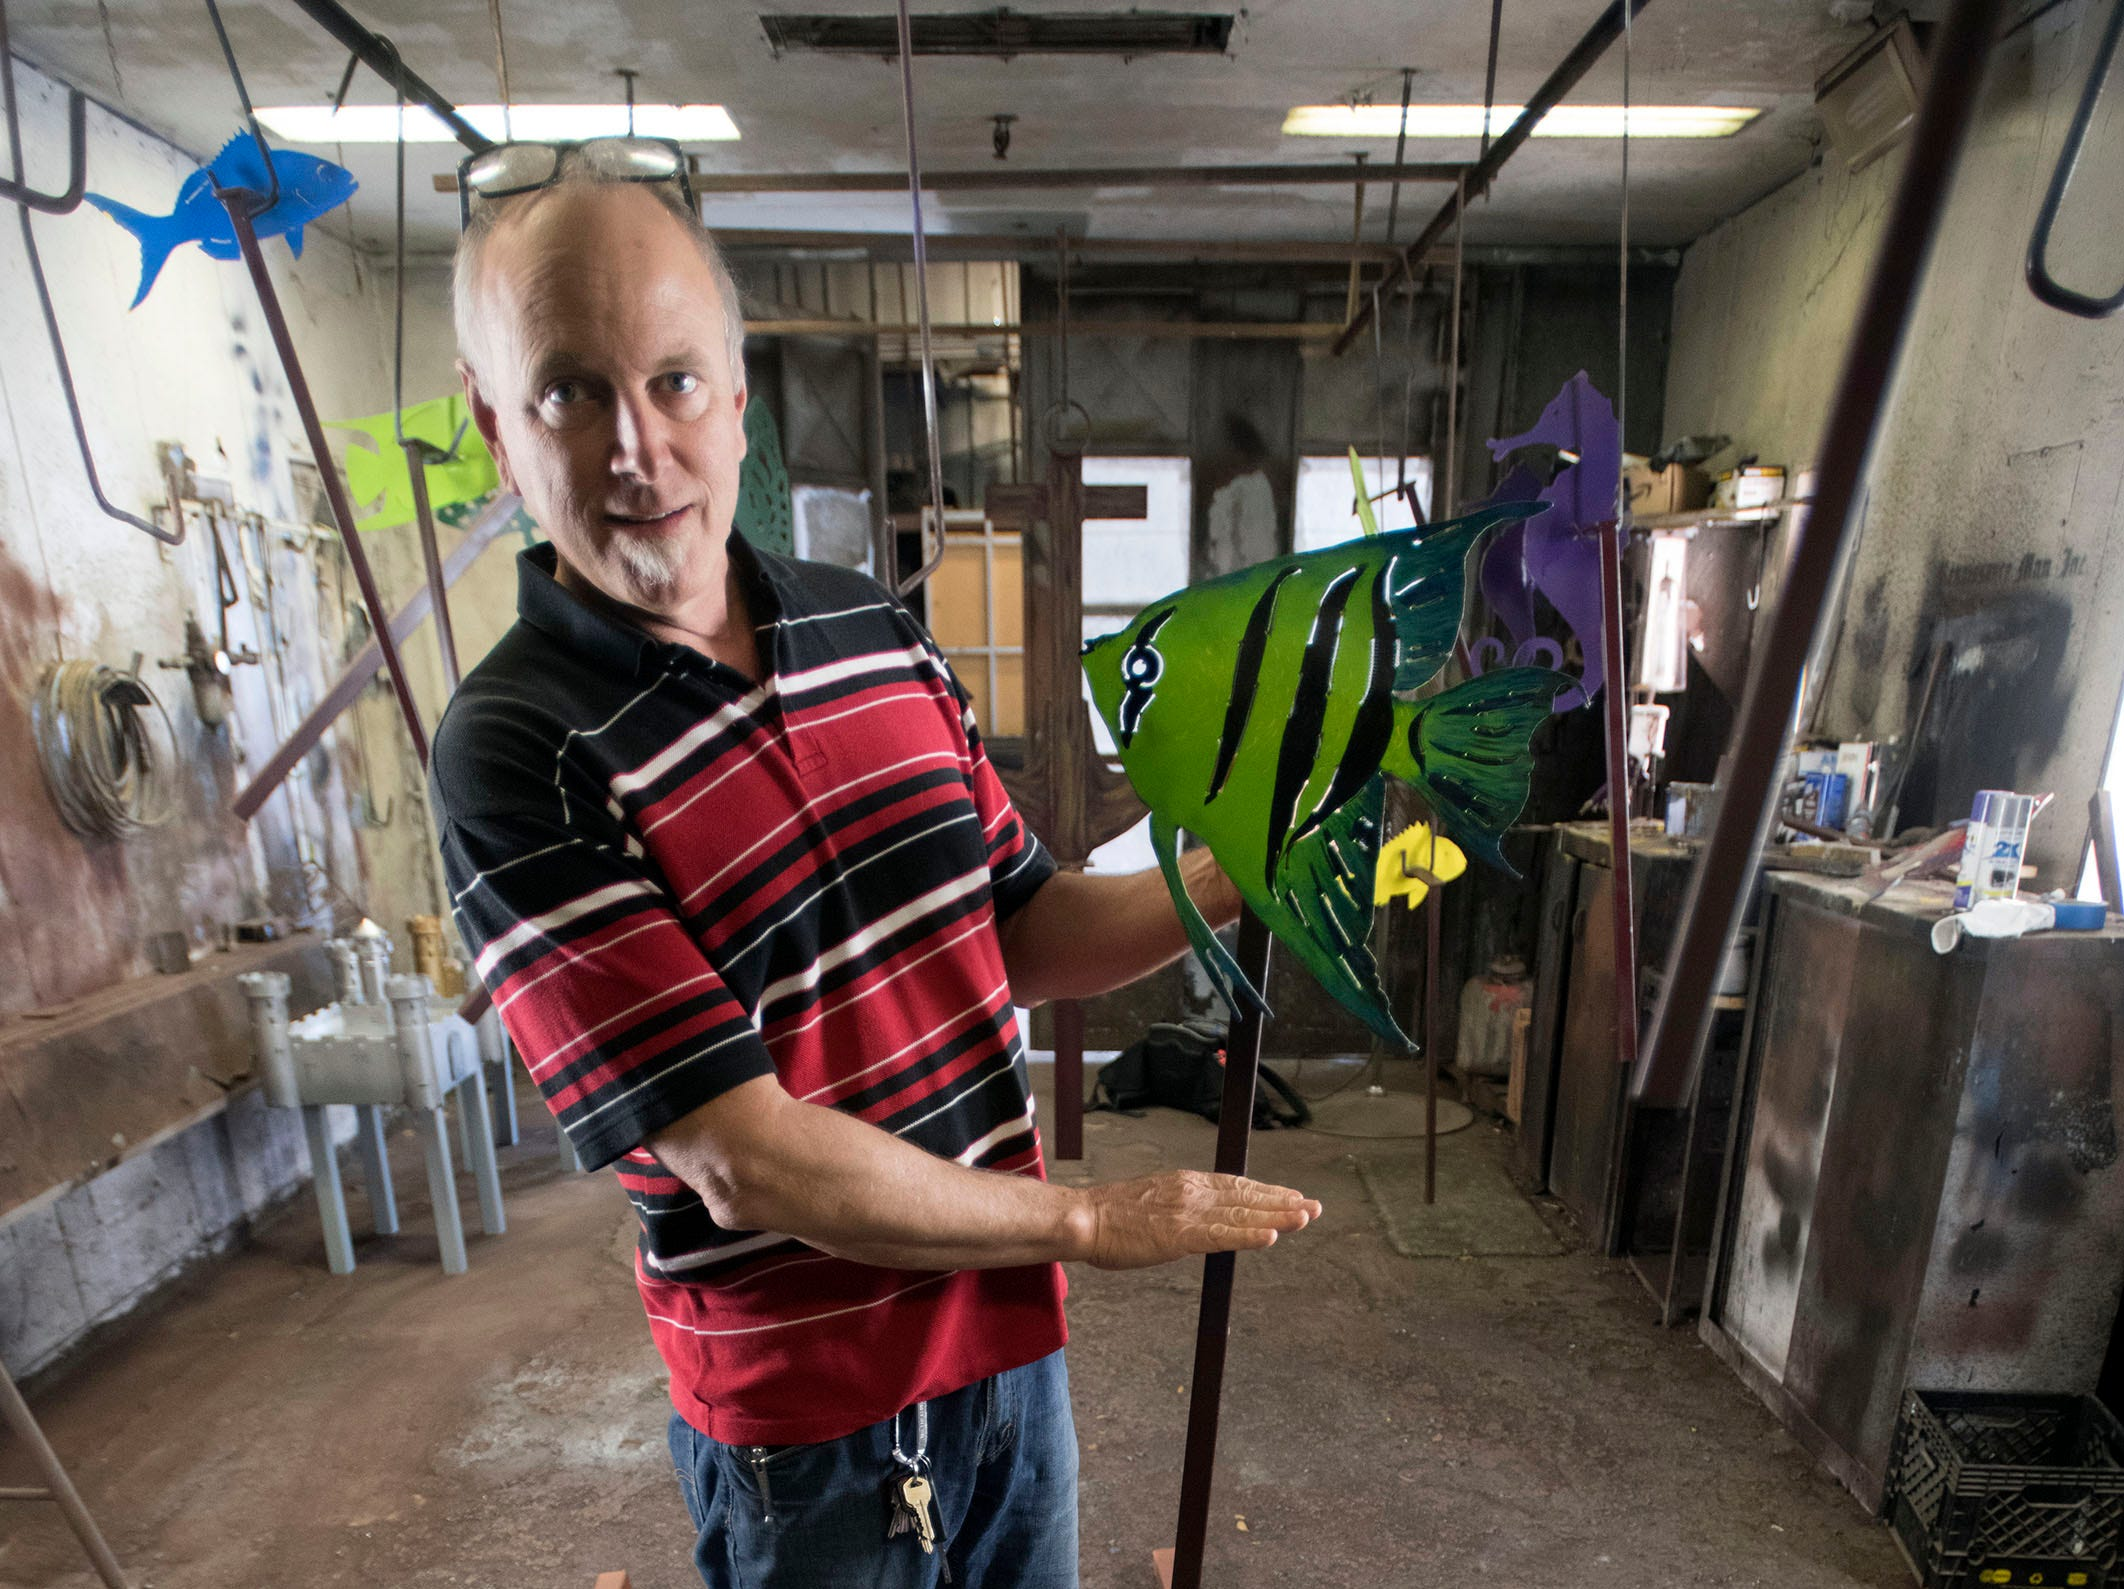 Kevin Marchetti, the owners of Renaissance Man, Inc., is putting the finishing touches on his latest creations before sending them off The Studer Family Children's Hospital at Sacred Heart on Wednesday, March 13, 2019. The metal sculptures and artwork will be on display in one of the new gardens at the hospital.